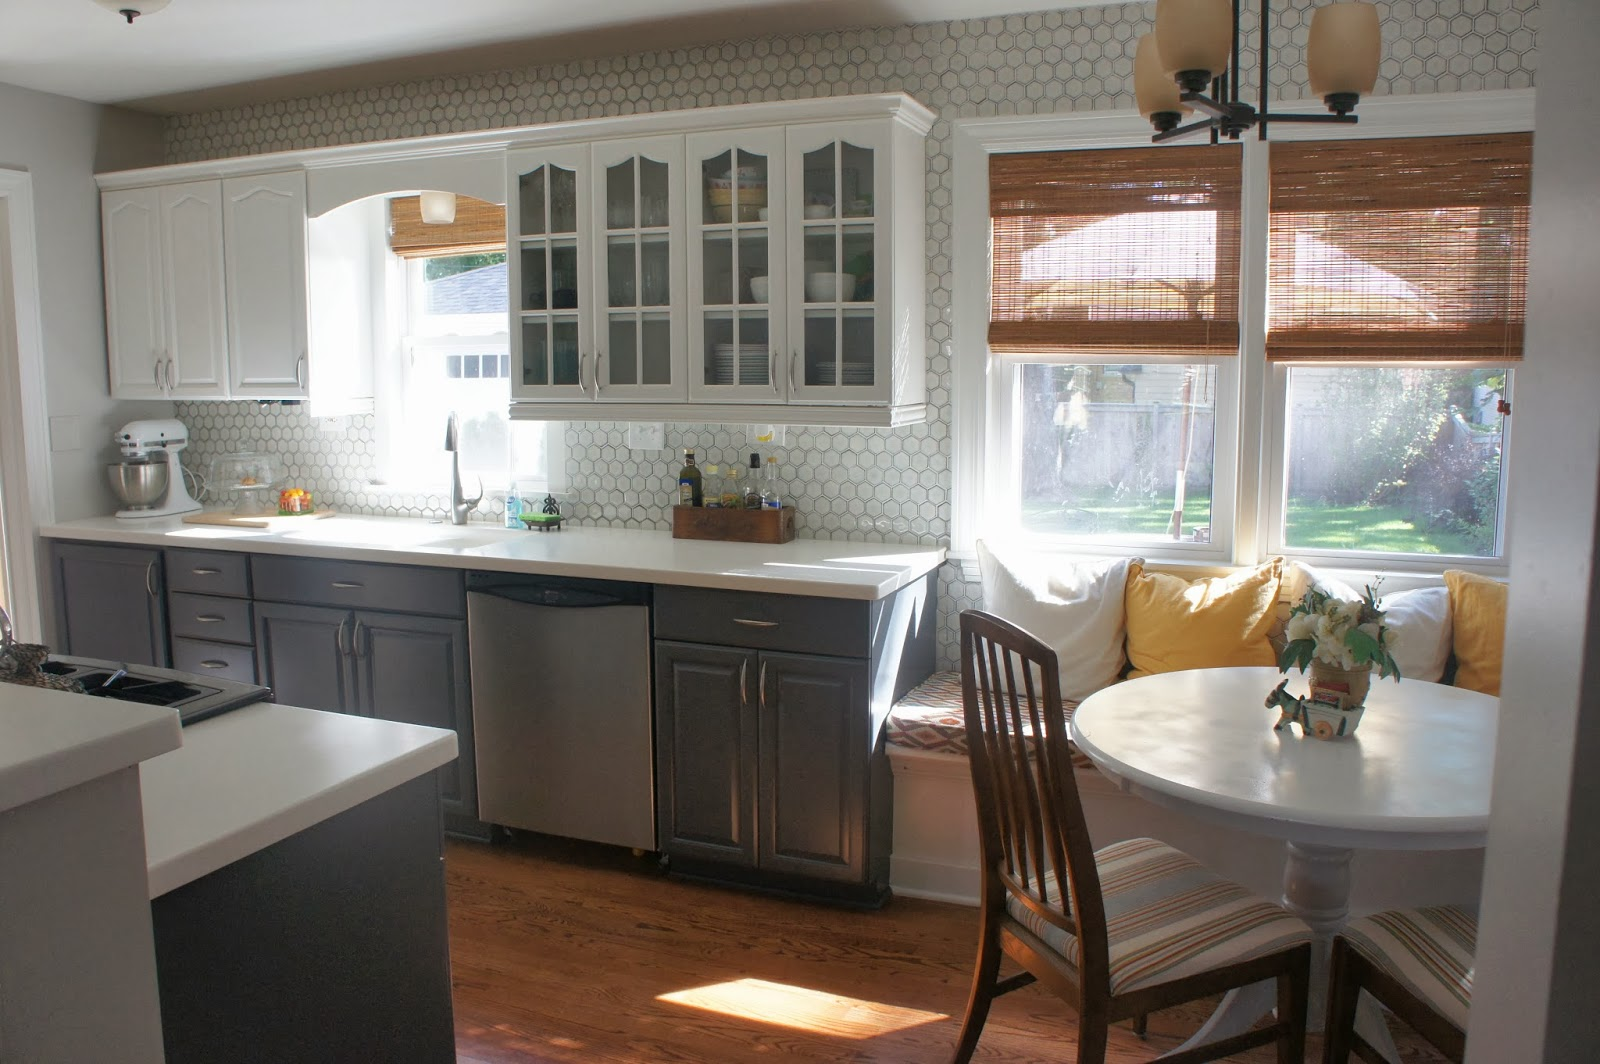 gray-and-white-kitchen-makeover-with-painted-cabinets-featured-on-remodelaholic